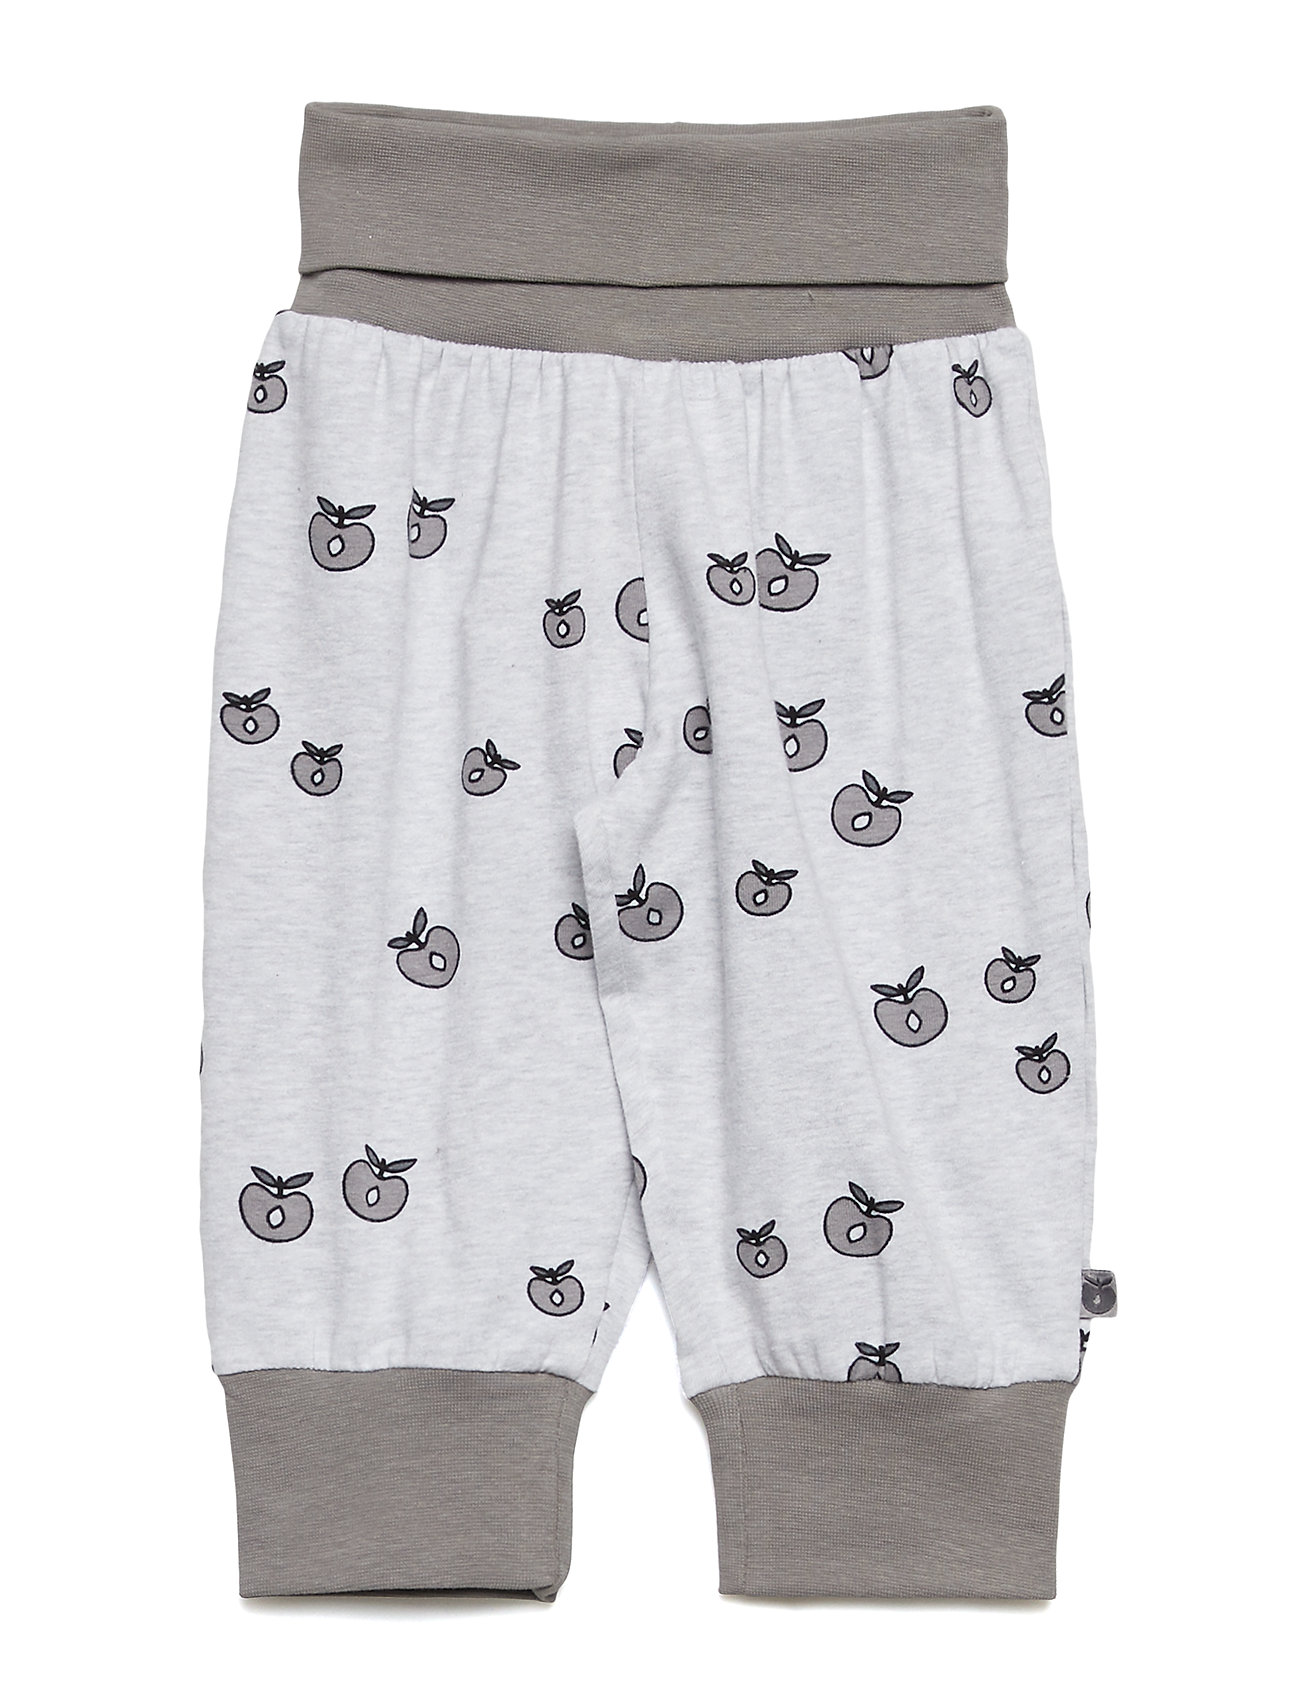 Småfolk Baby pants Waistband. Apple. Originals. - LT. GREY MIX